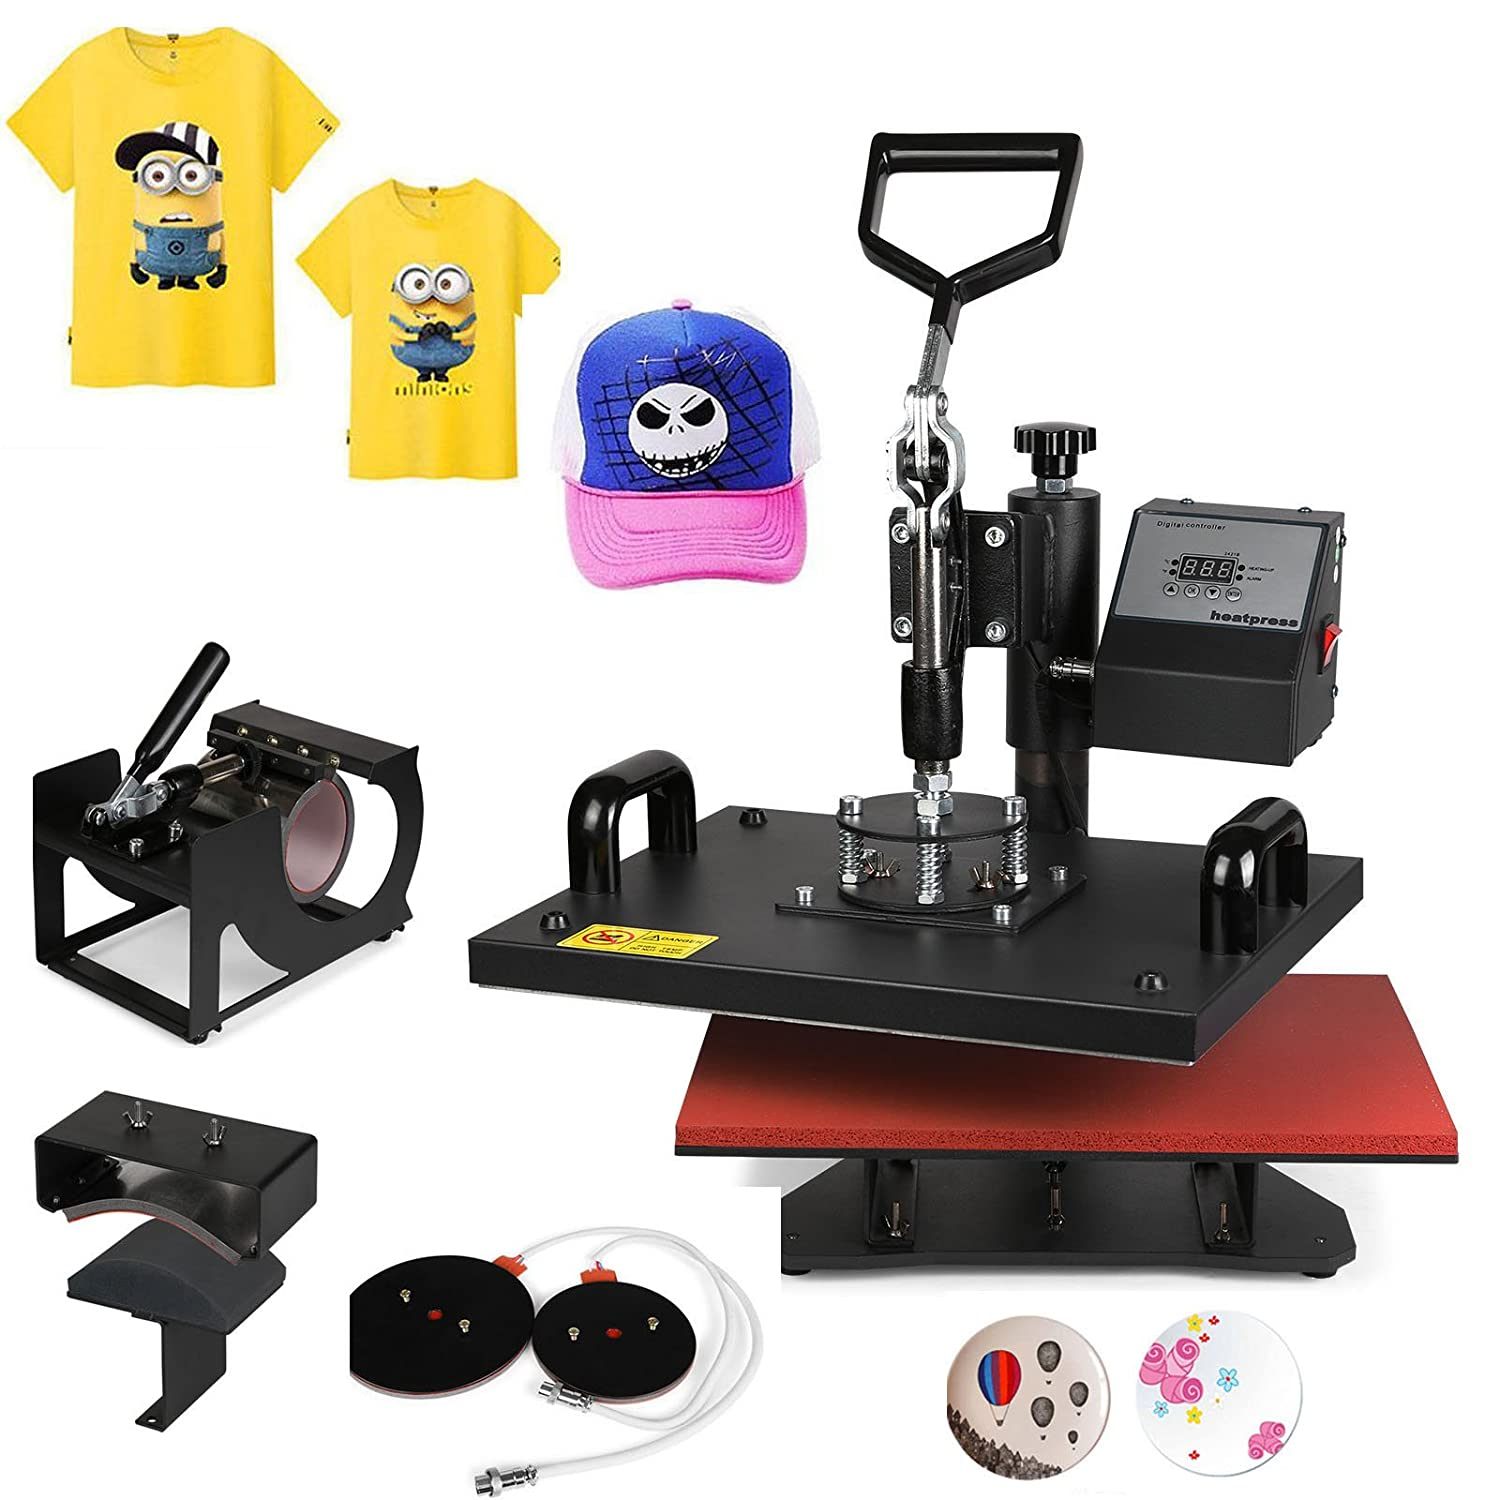 Mophorn Heat Press 15 X 15 Inch 8 in 1 Desktop Iron Baseball Hat Press Multifunction Sublimation Heat Press Machine Digital Swing Away Design (8pcs 15X15 Presser)